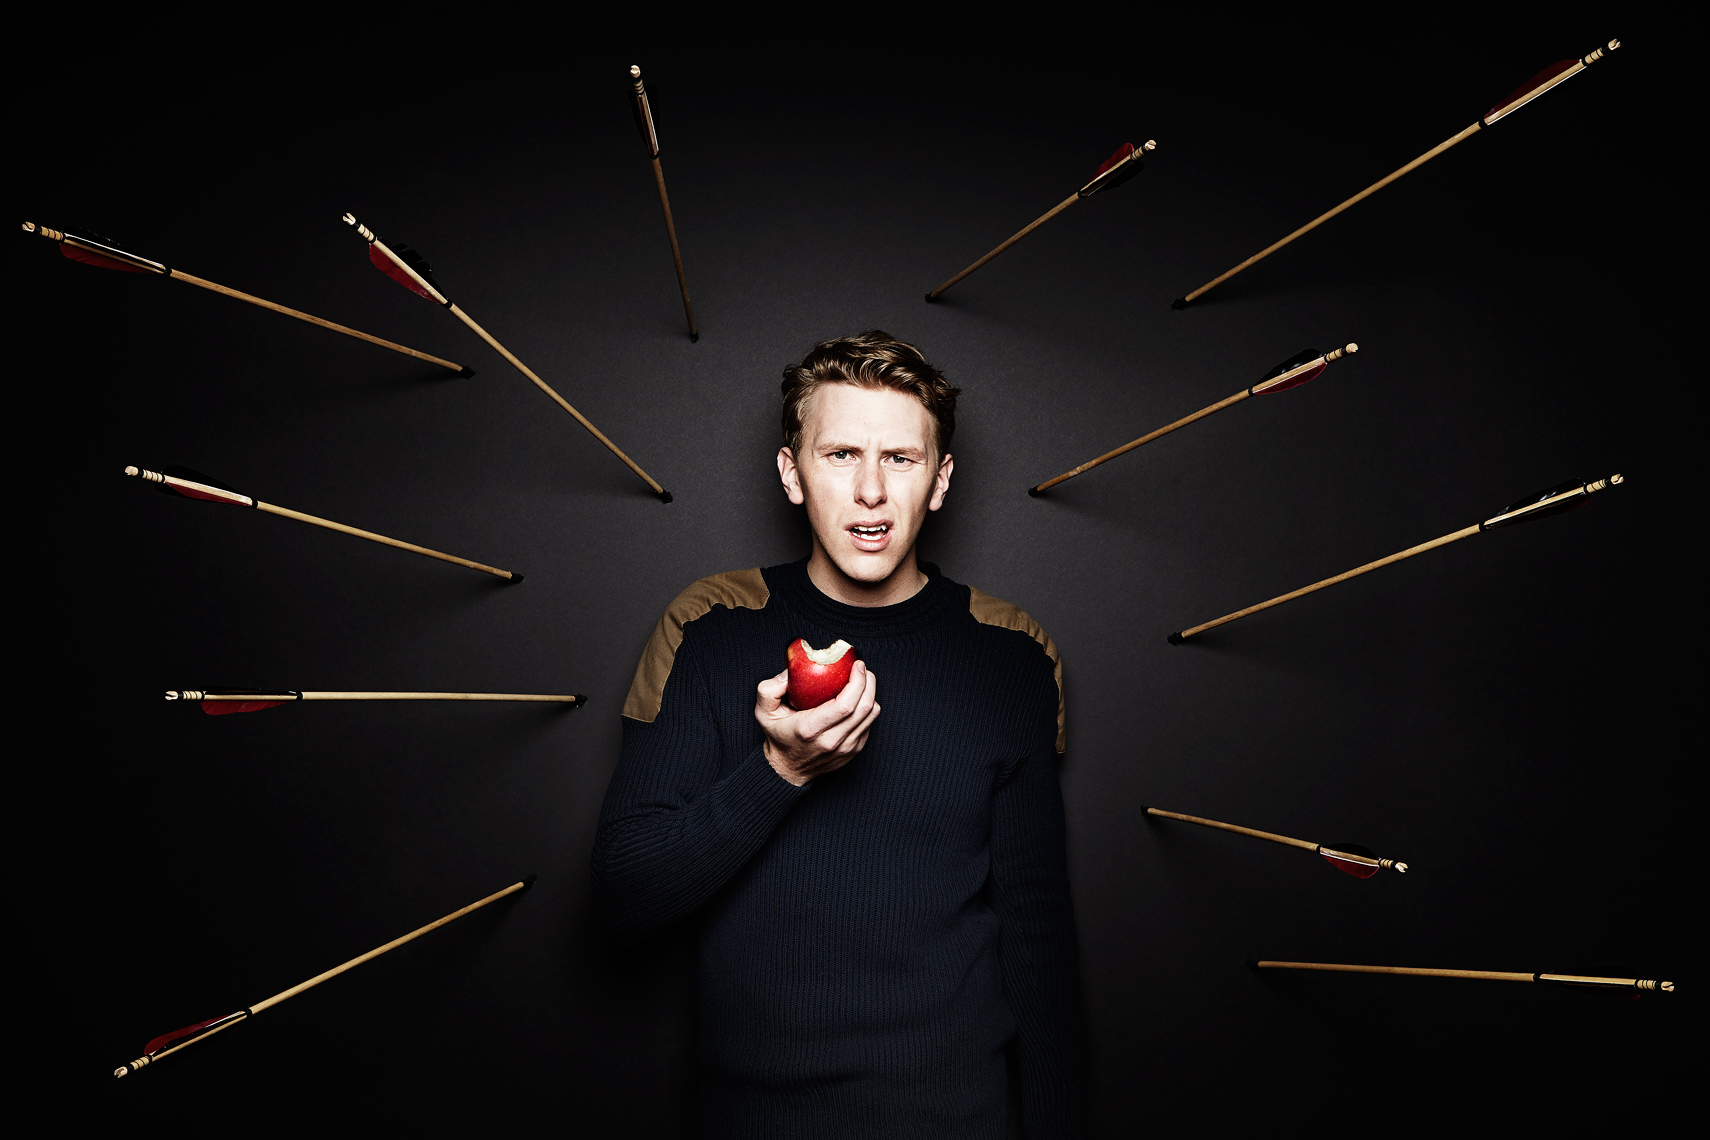 Guy eating an apple surrounded by arrows